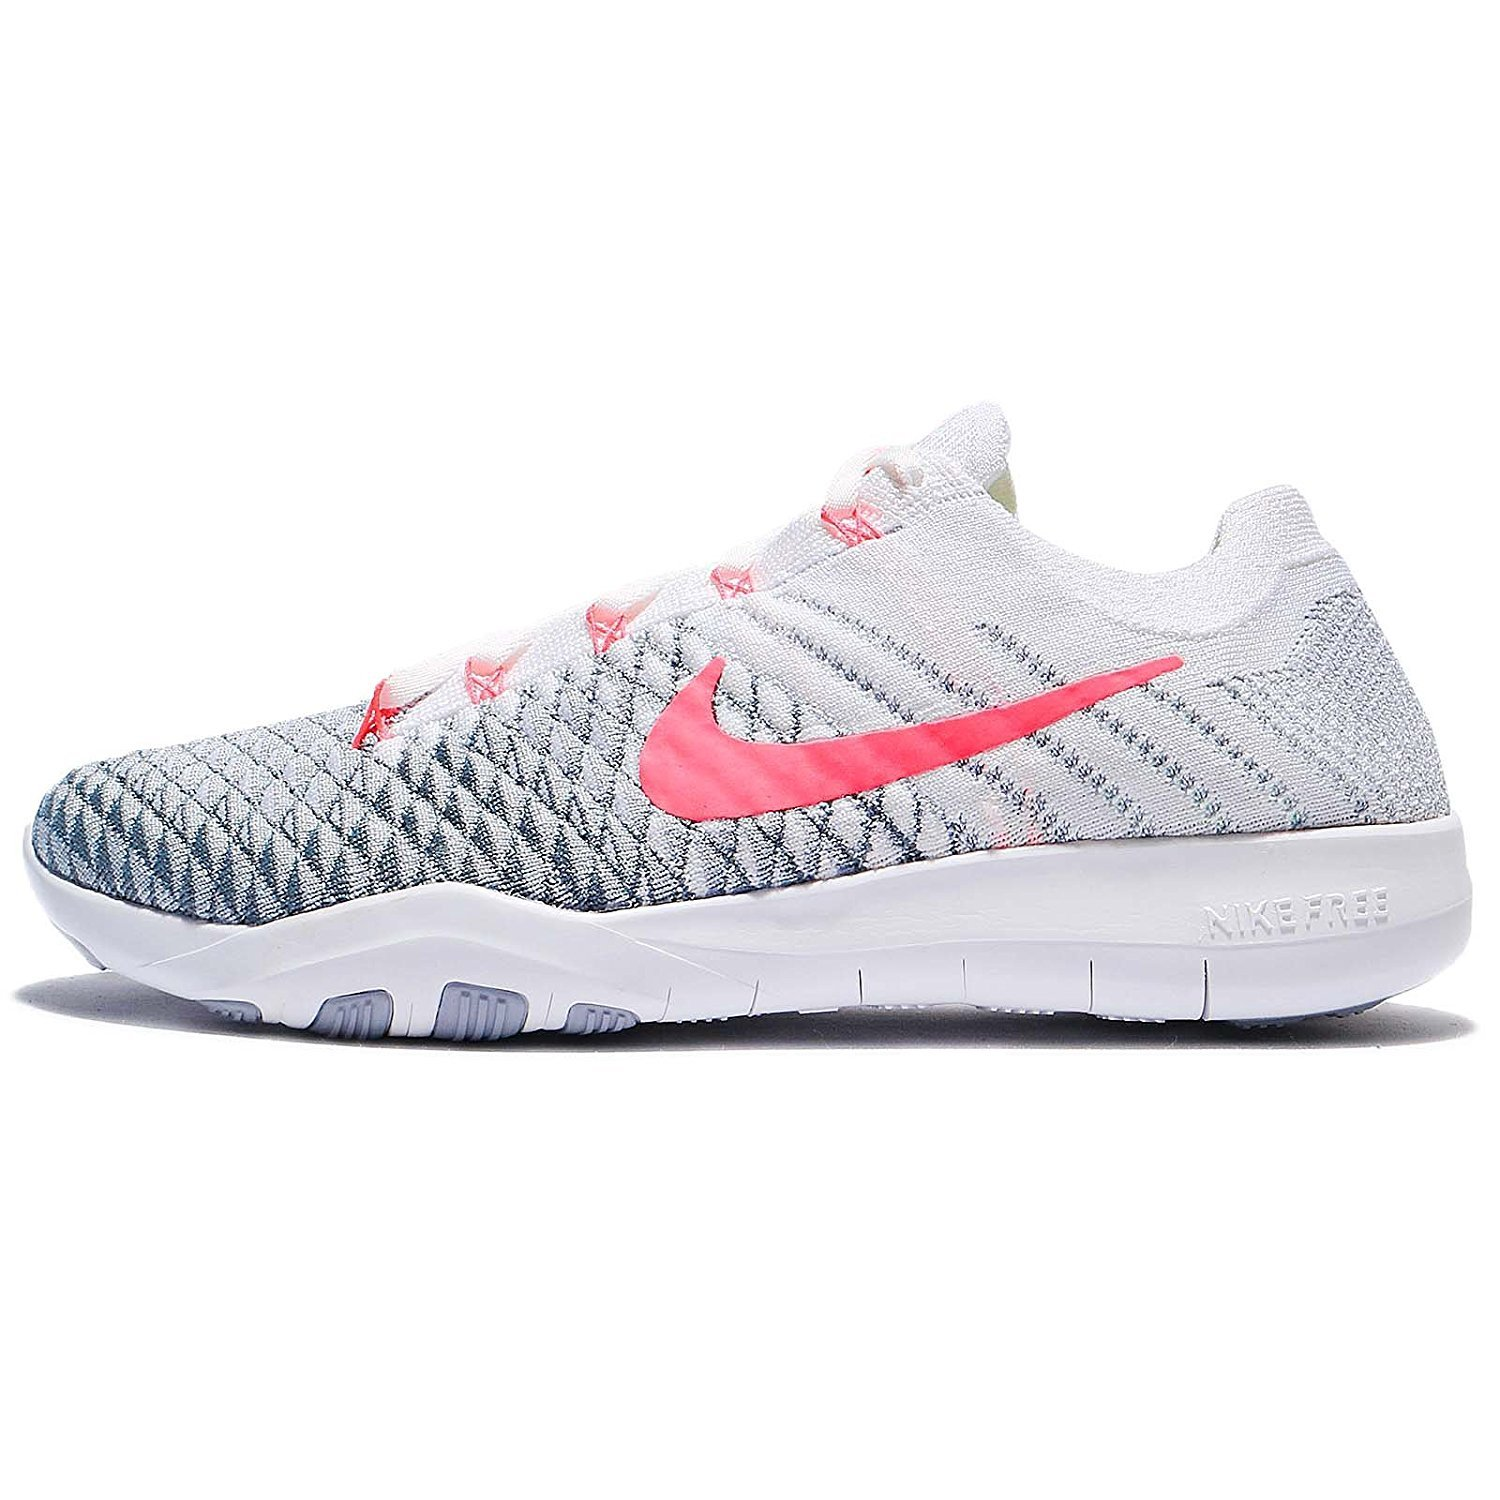 NIKE Free TR Flyknit 2 Womens Running Shoes B000T7DQ7I 11 B(M) US|White/Hyper Punch Wolf Grey